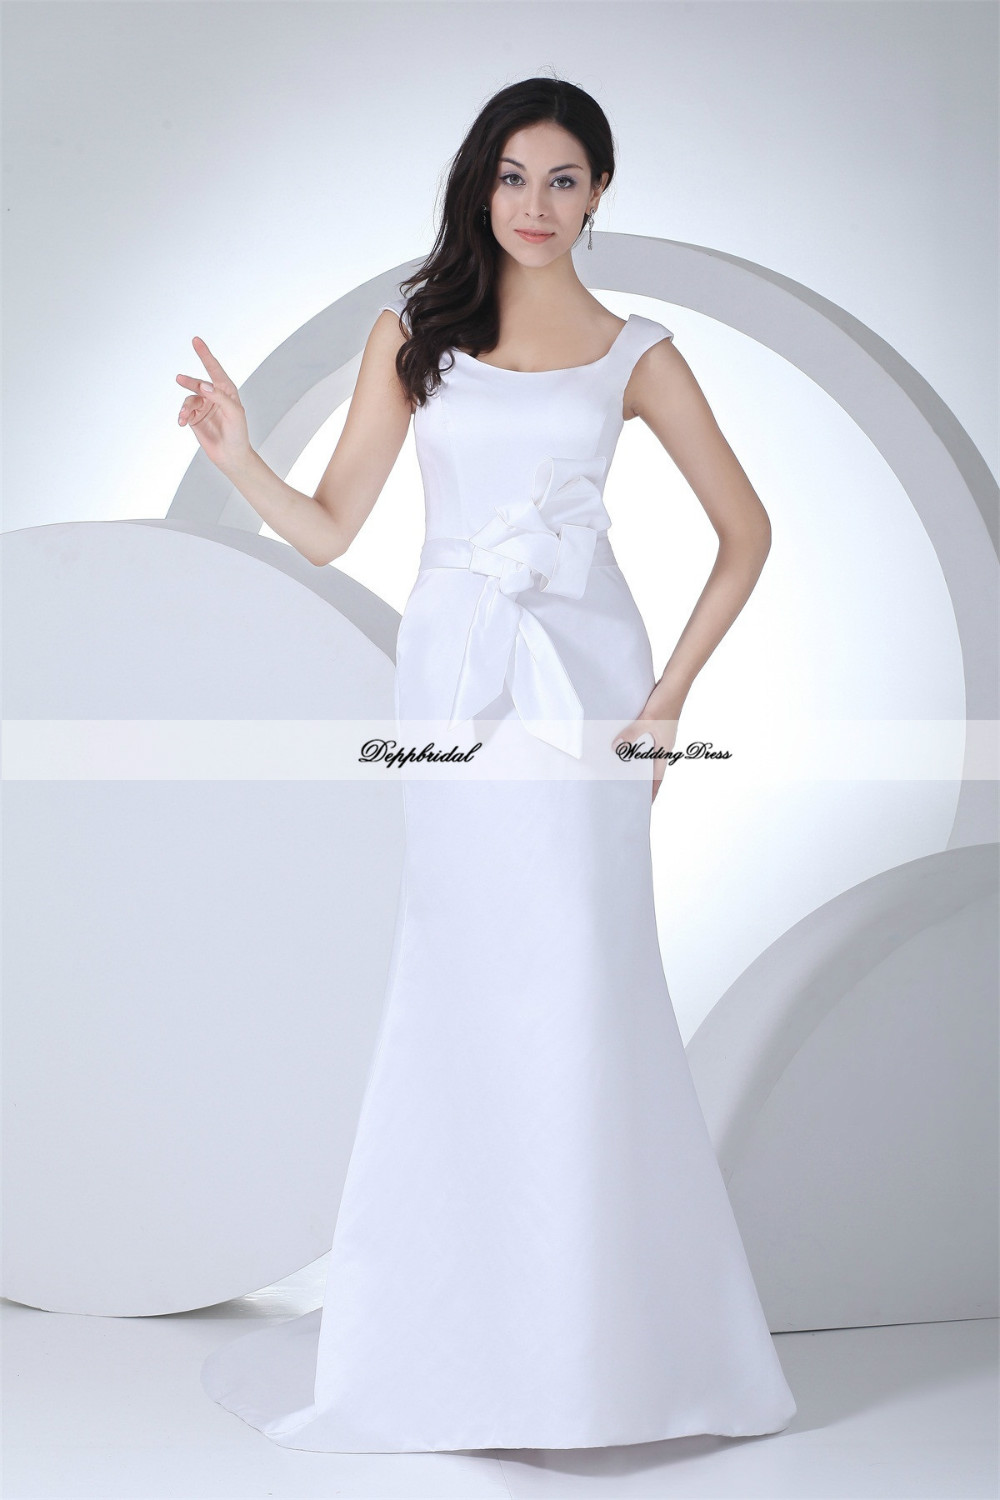 Chinese wholesale wedding dresses suppliers dress ideas for Wholesale wedding dress suppliers